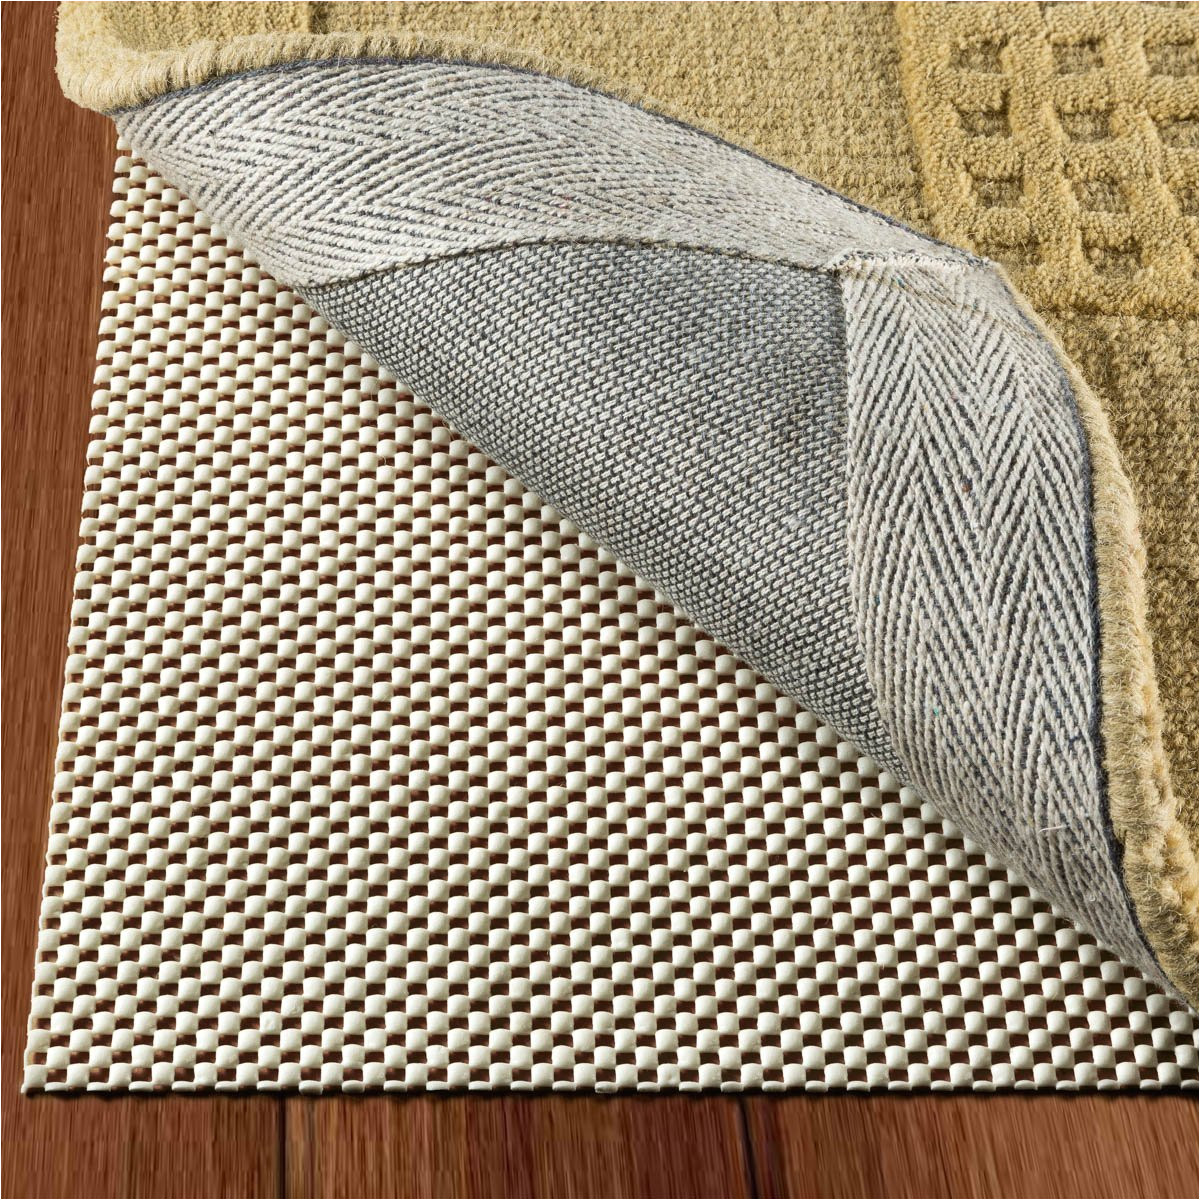 amazon com doublecheck products non slip rug pad size 5 x 7 extra strong grip thick padding and kitchen dining